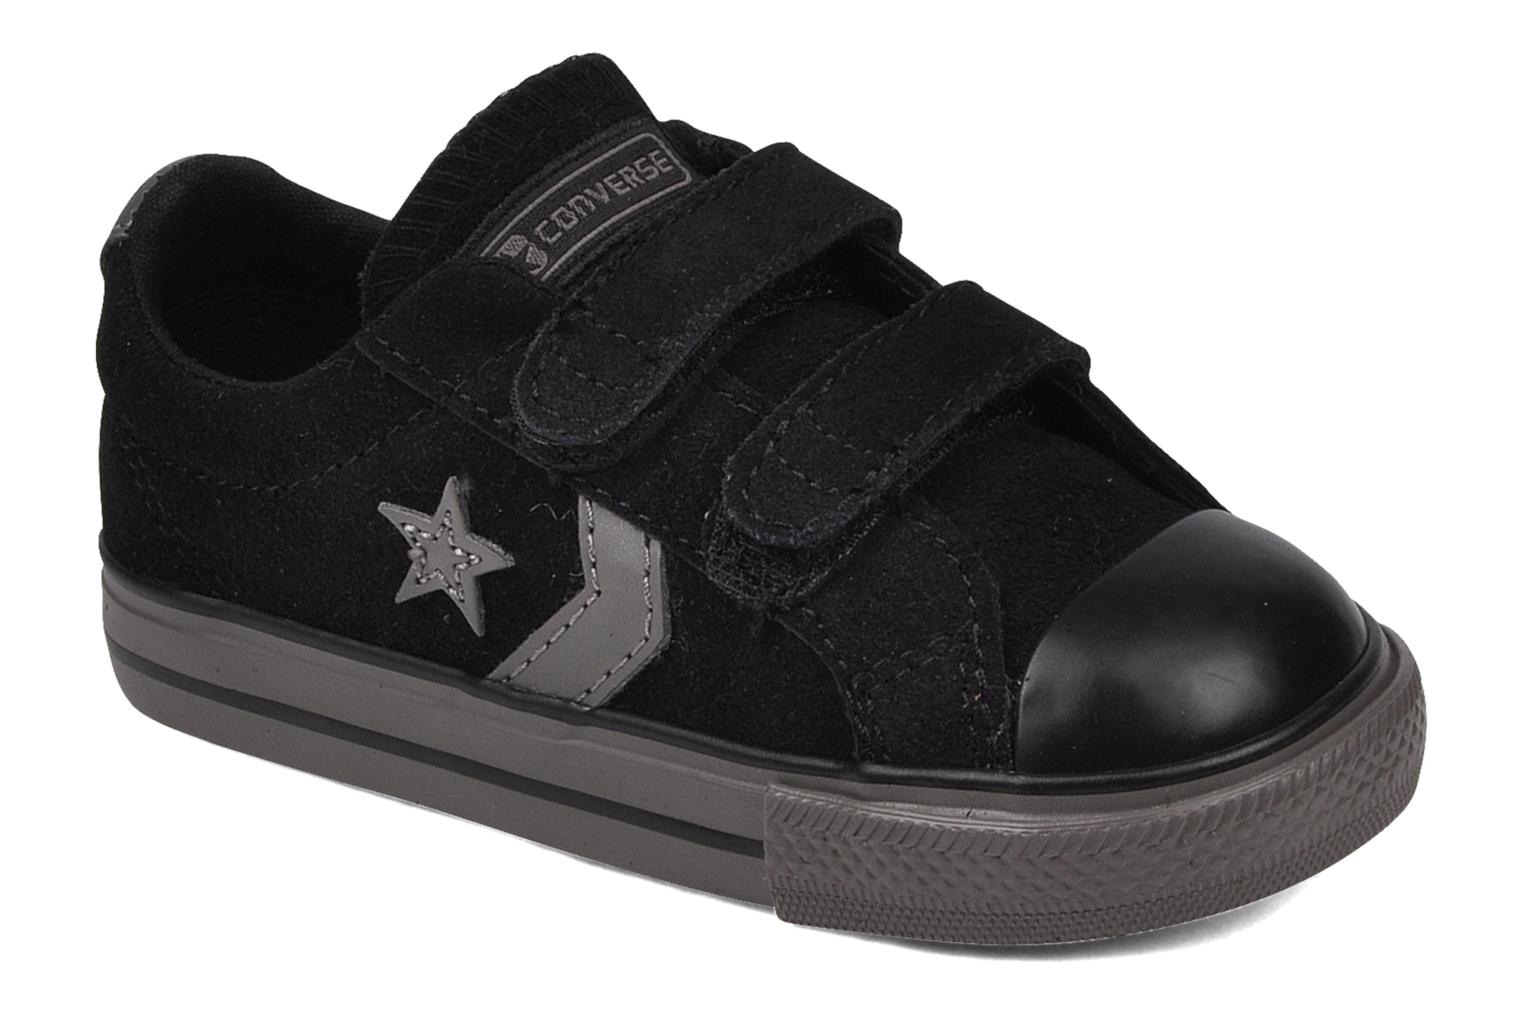 Star player 2v suede ox Noir